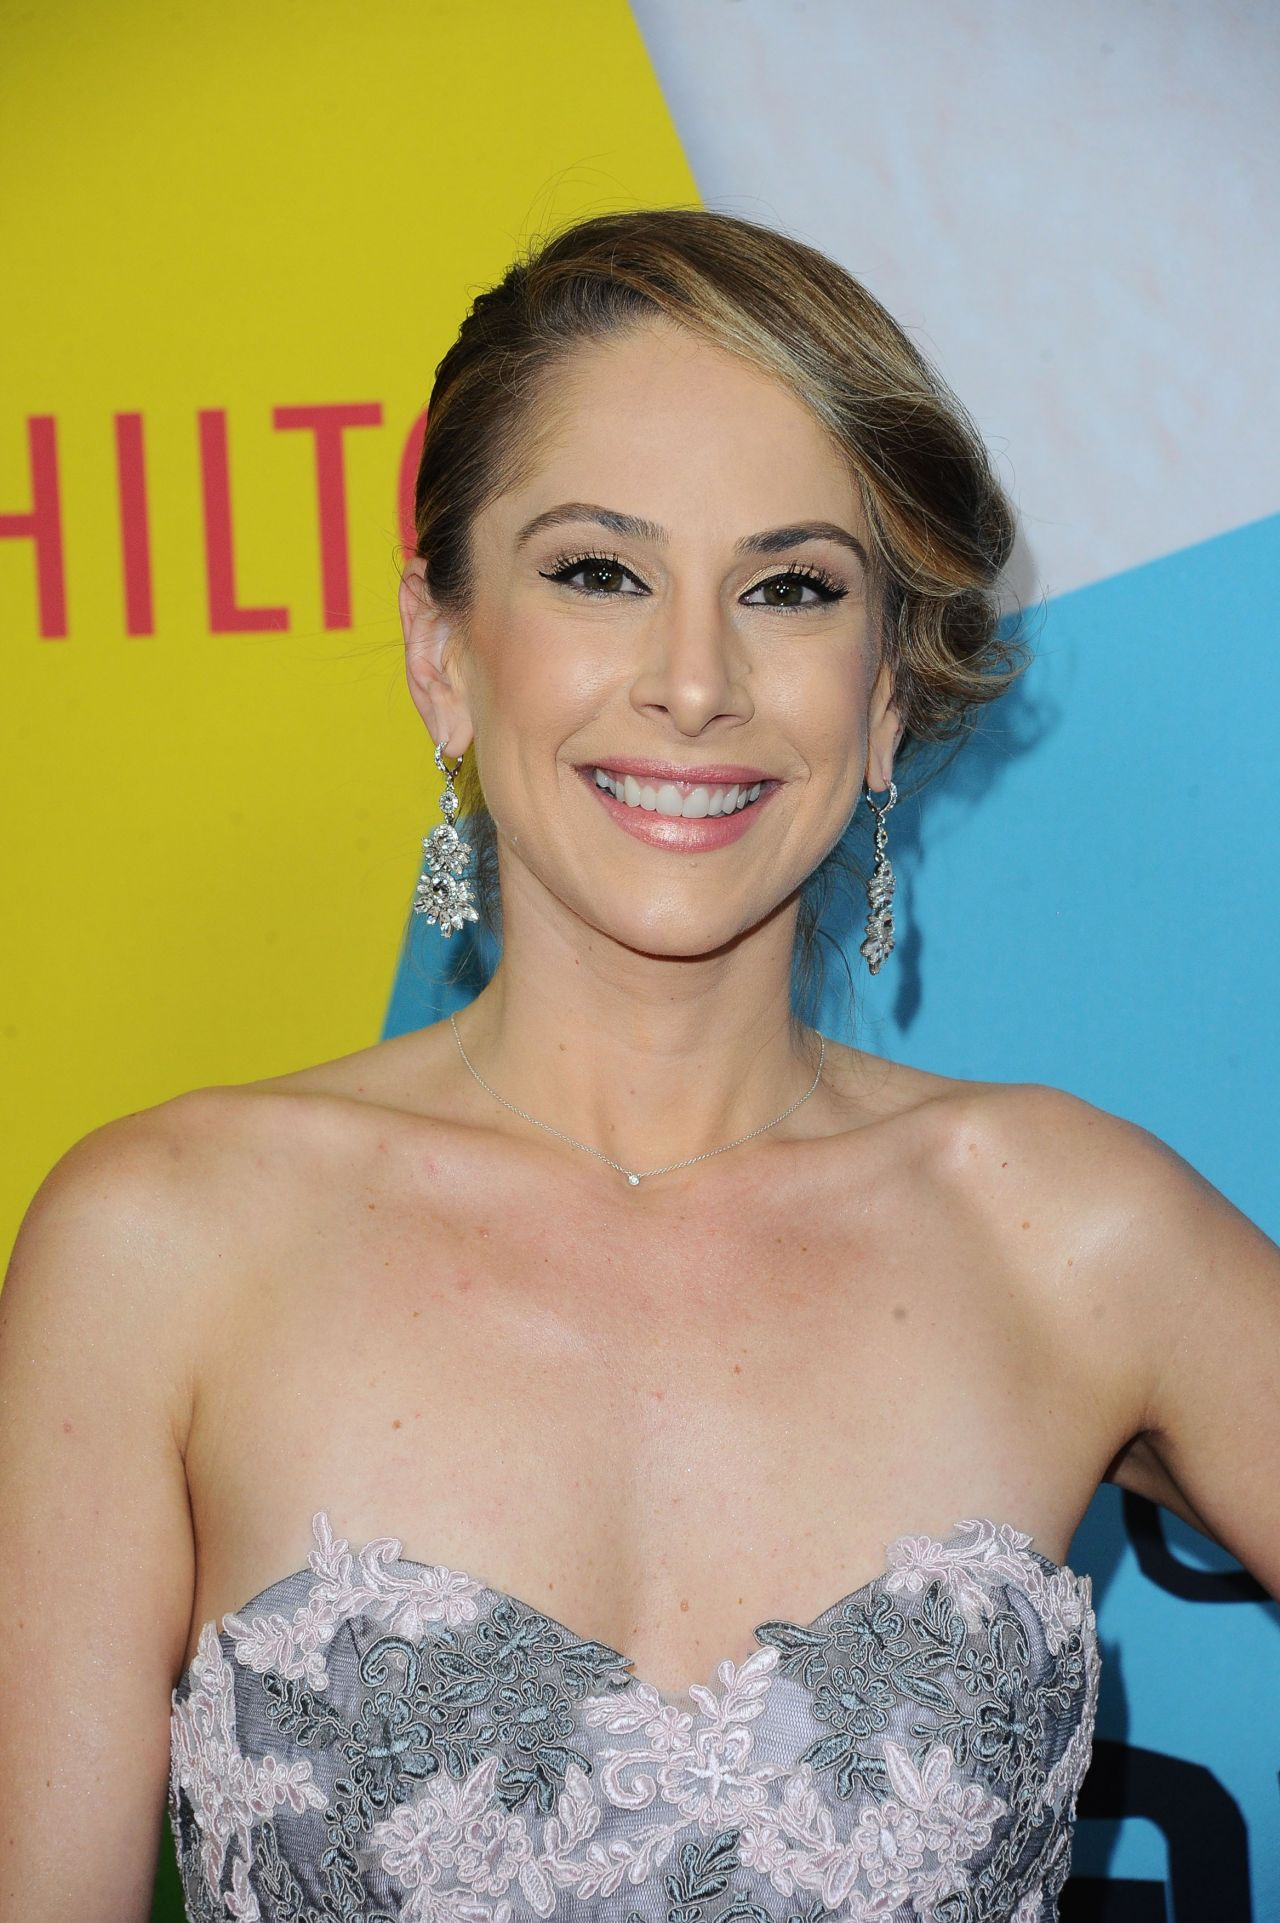 Ana Kasparian Latest Photos Celebmafia